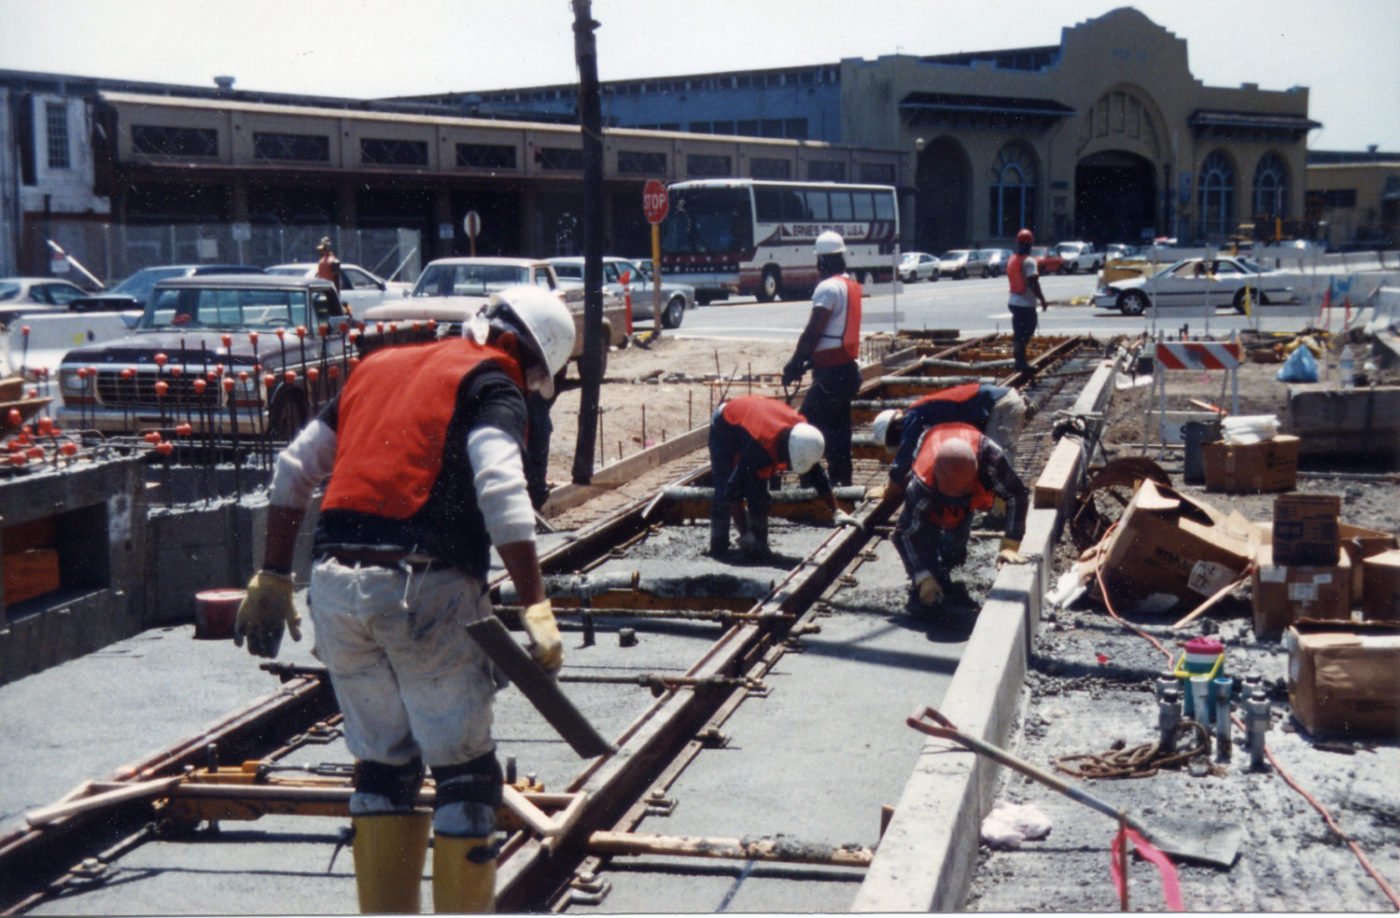 Liberty-Builders-Embarcadero-light-rail-1995-1996-1400x918, Out with Prop 209: Black Lawmakers make case for affirmative action in California, Local News & Views